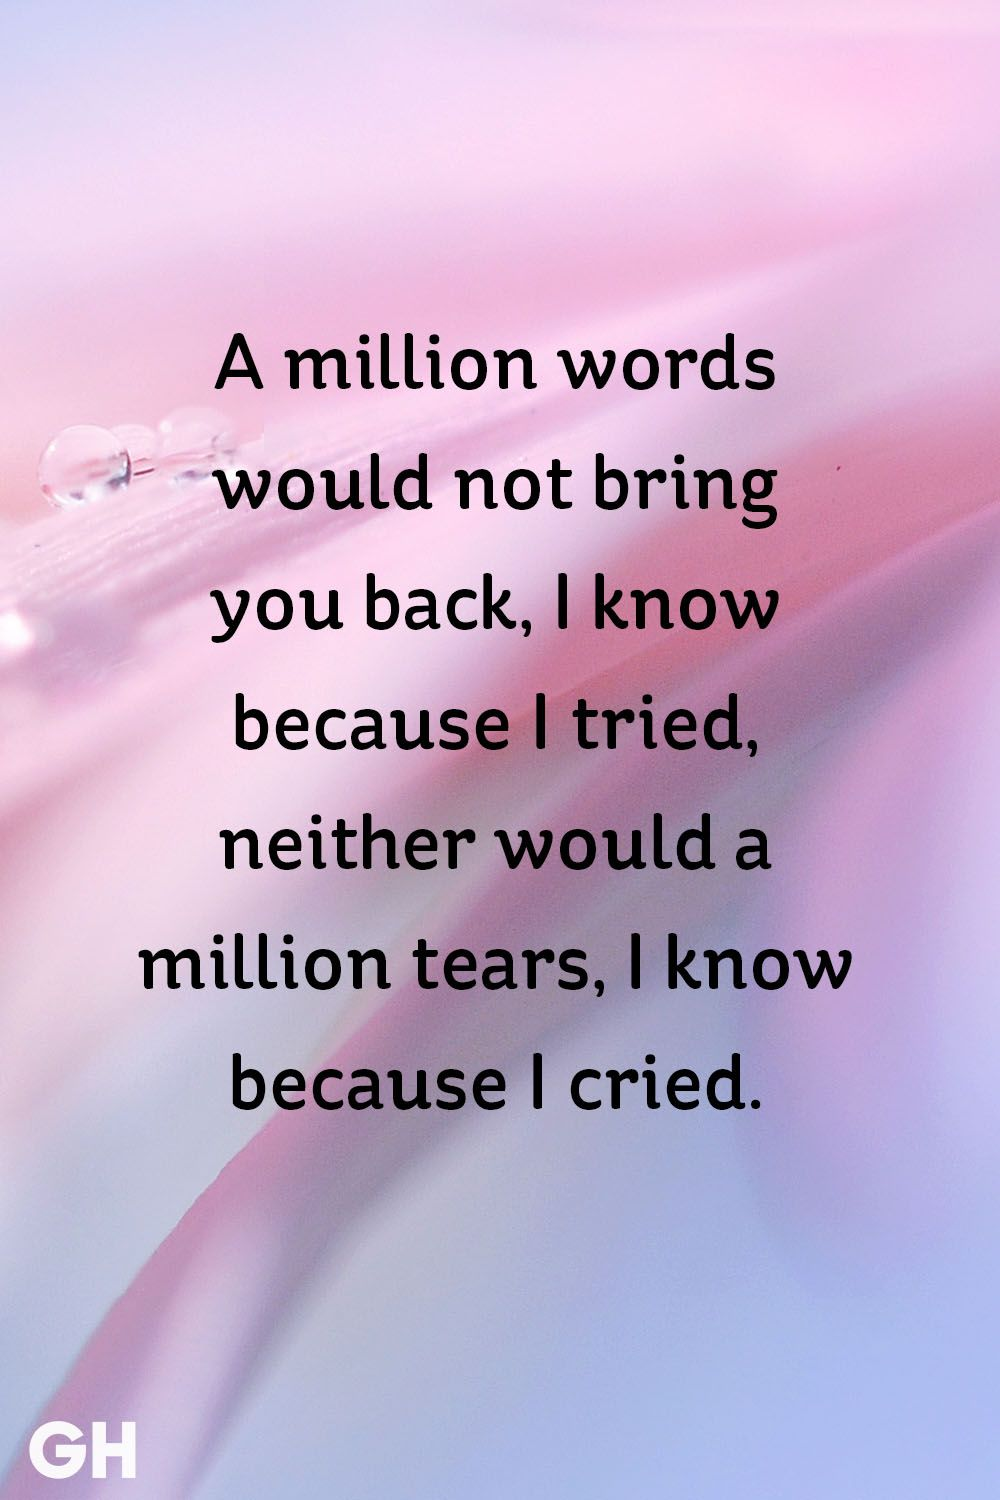 Image of: Best Sad Quotes Good Housekeeping 16 Best Sad Quotes Quotes Sayings About Sadness And Tough Times